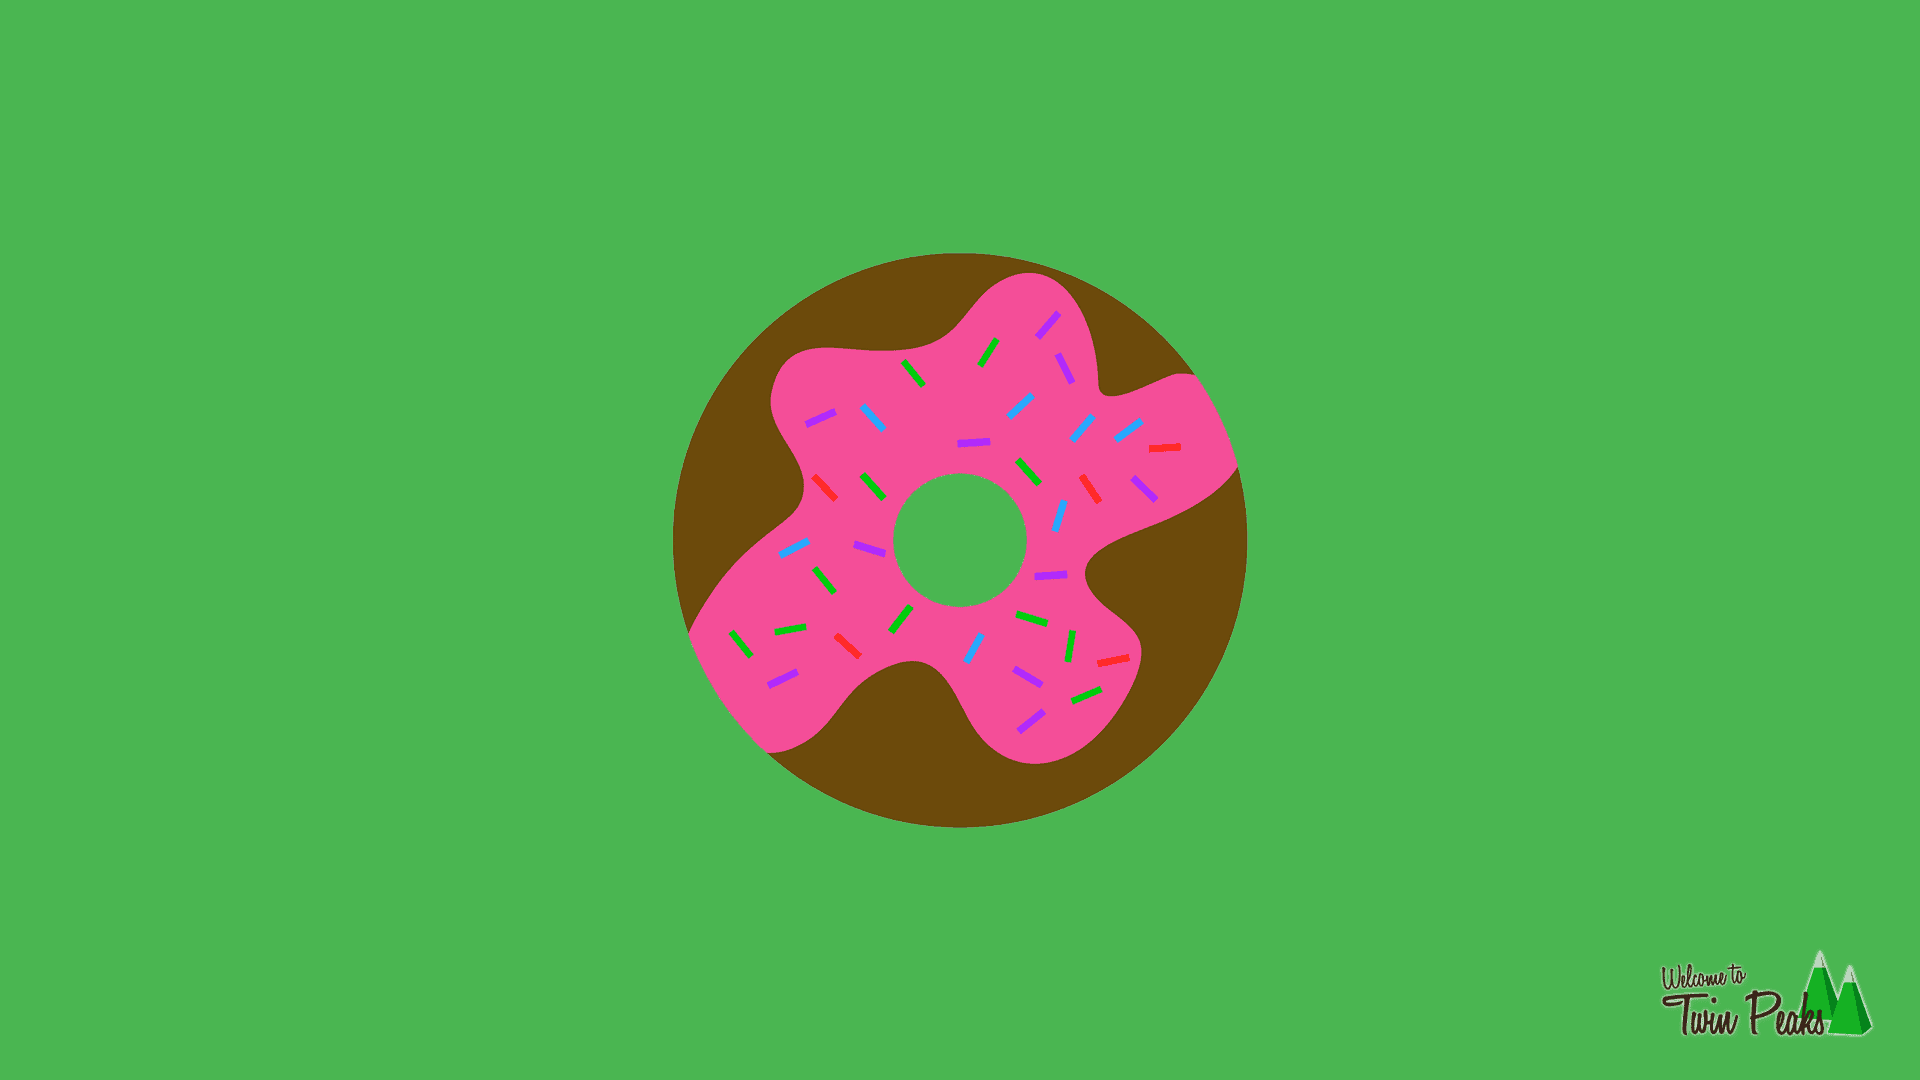 Free Donut Desktop Wallpaper